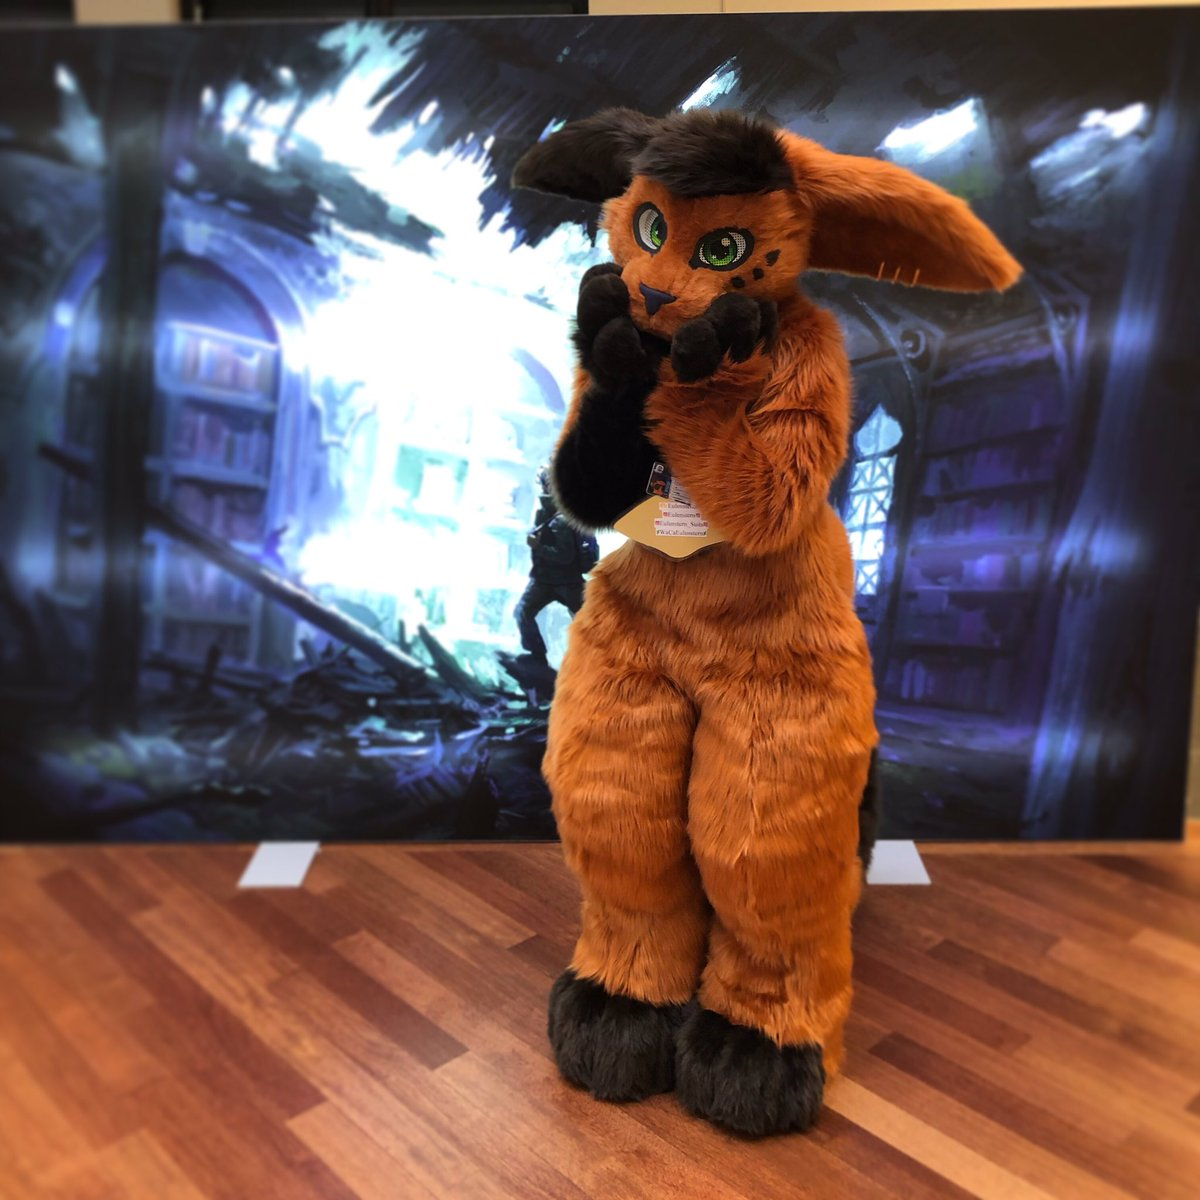 We might be stuck in time    @leok_64   @SoniEule   #Eurofurence25 #eurofurence #ef25 #fursuit #fursuiting #fursuitmaker #catfursuit #furry #furryconvention #fursuiter #fursona #oc #cosplay #sewing #Caturday #animal #Anthro<br>http://pic.twitter.com/JExLDtuTVr